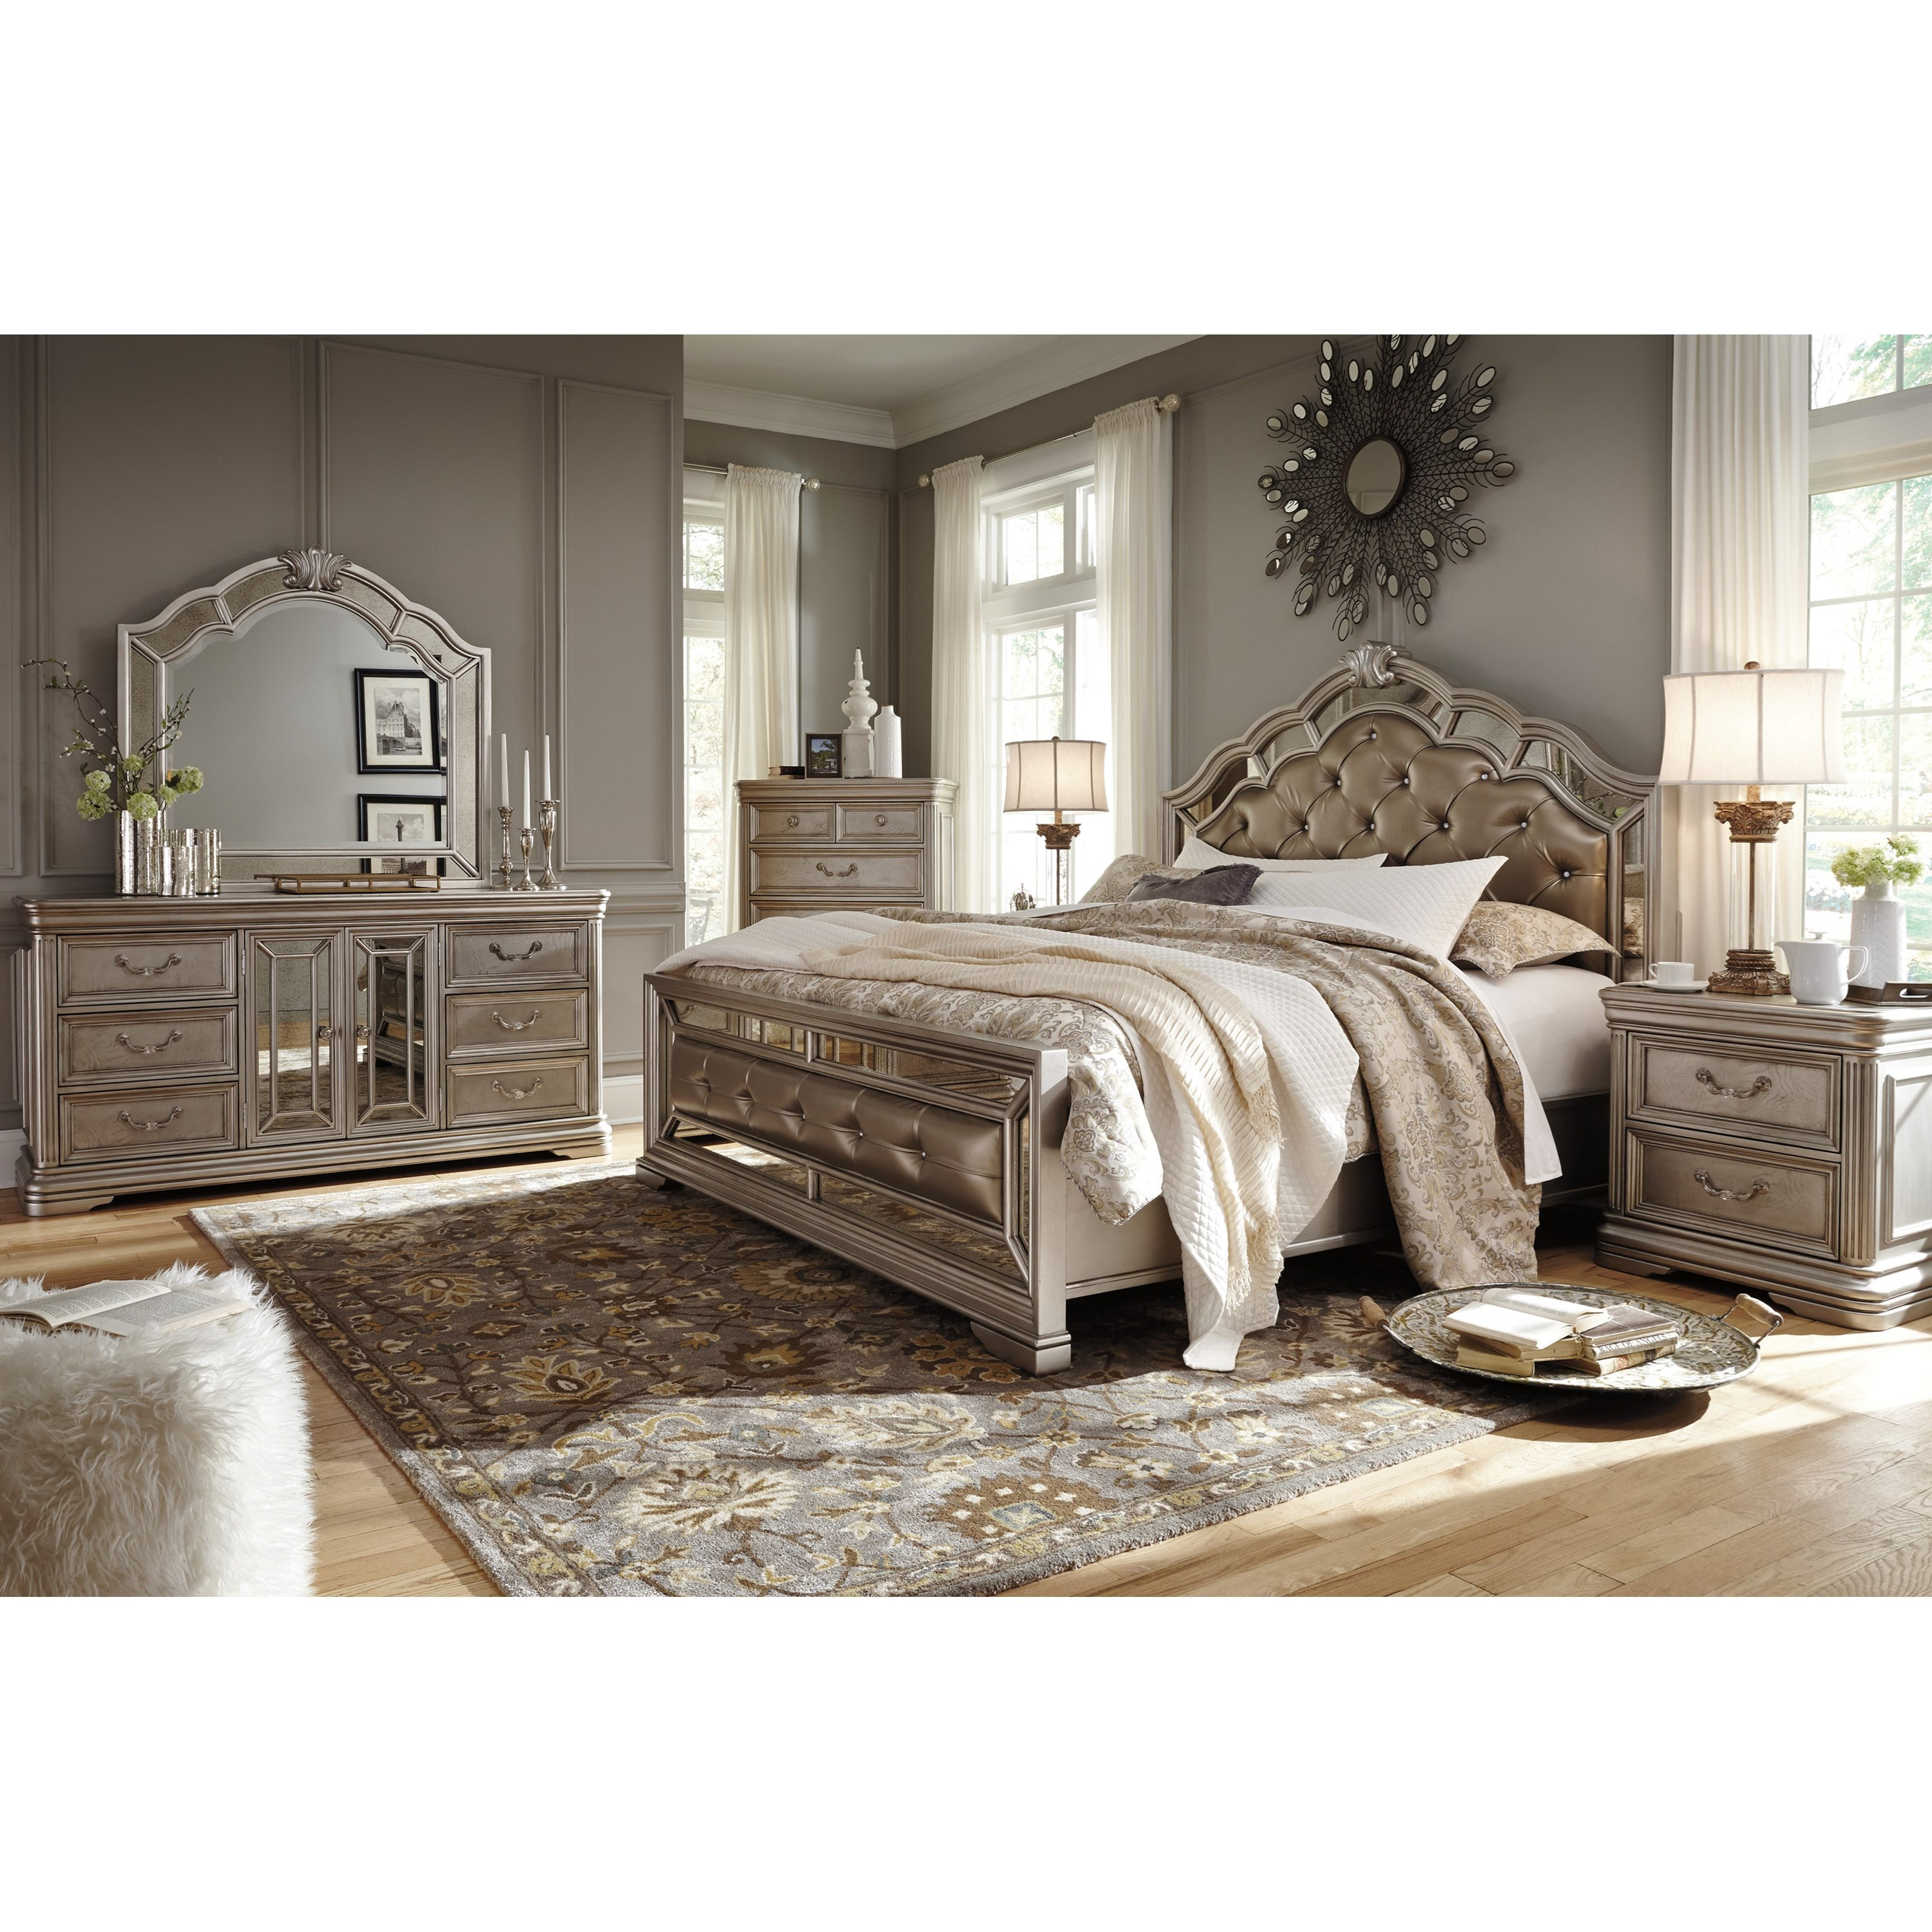 King Upholstered Bed In Silver Finish By Signature Design